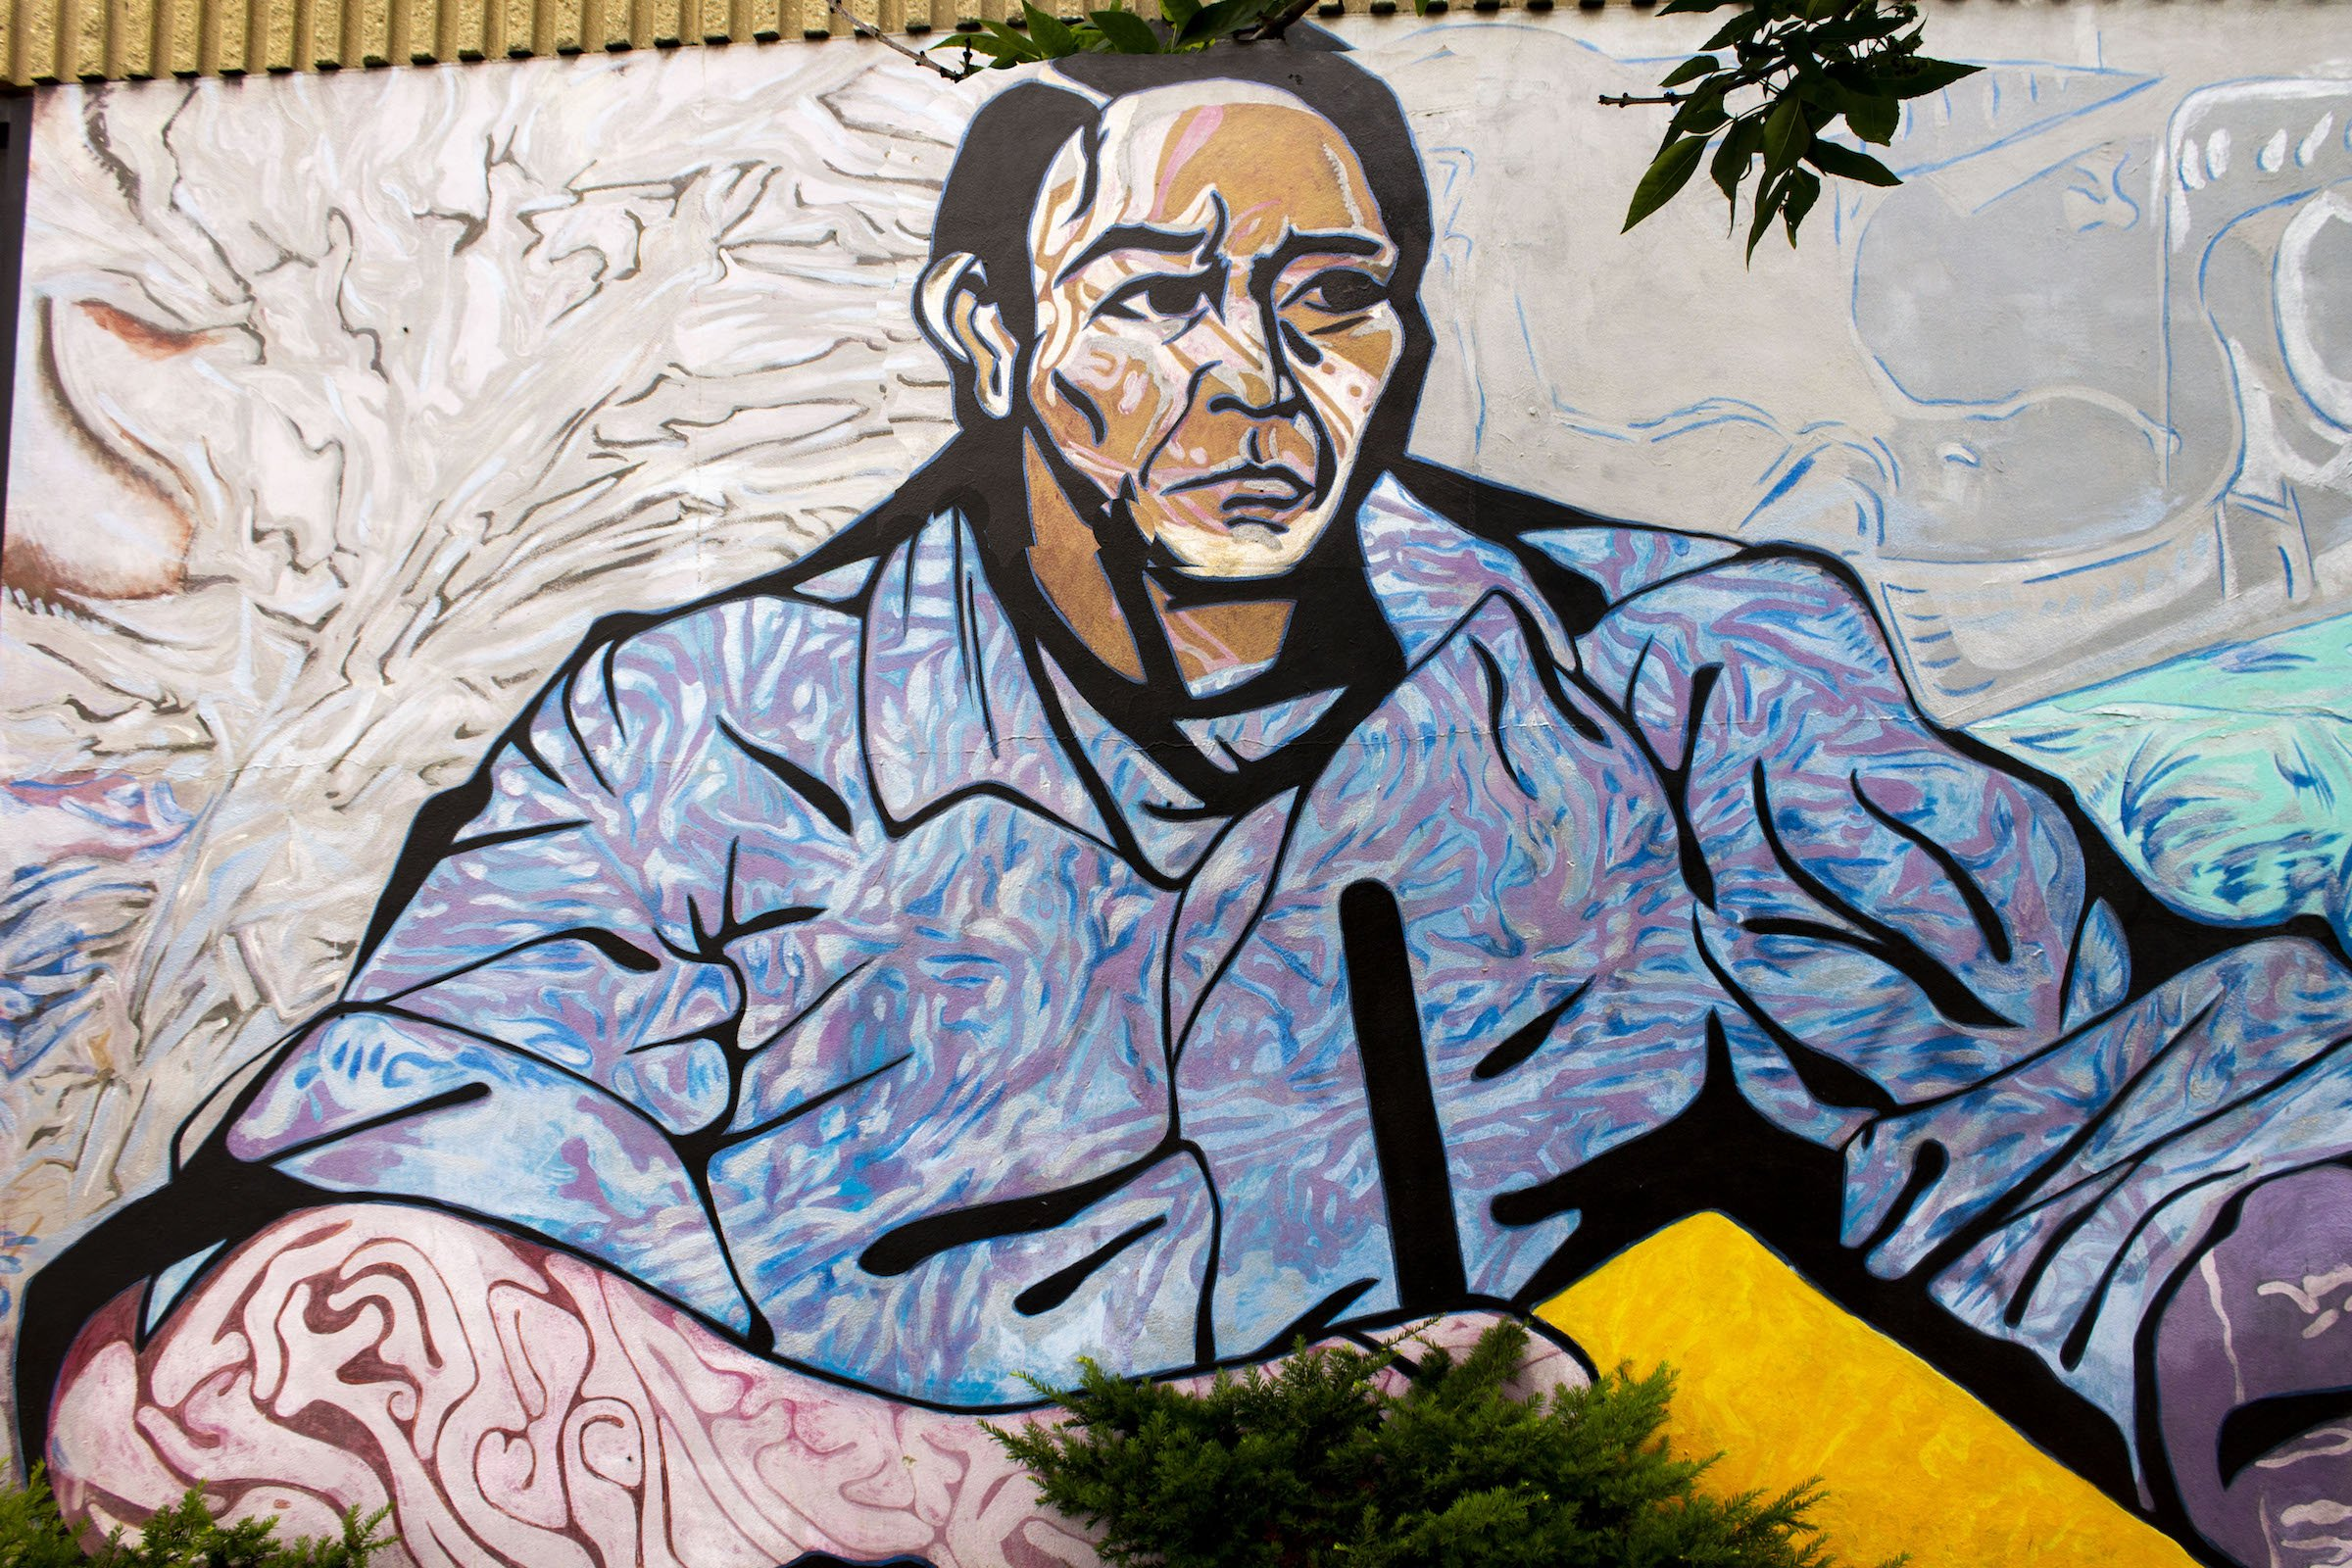 At the beginning of the mural Benito Pablo Juárez García is shown writing on a paper. He is displayed as strong, powerful and successful all attributes the community of Pilsen wanted to instill and inspire its youth with.